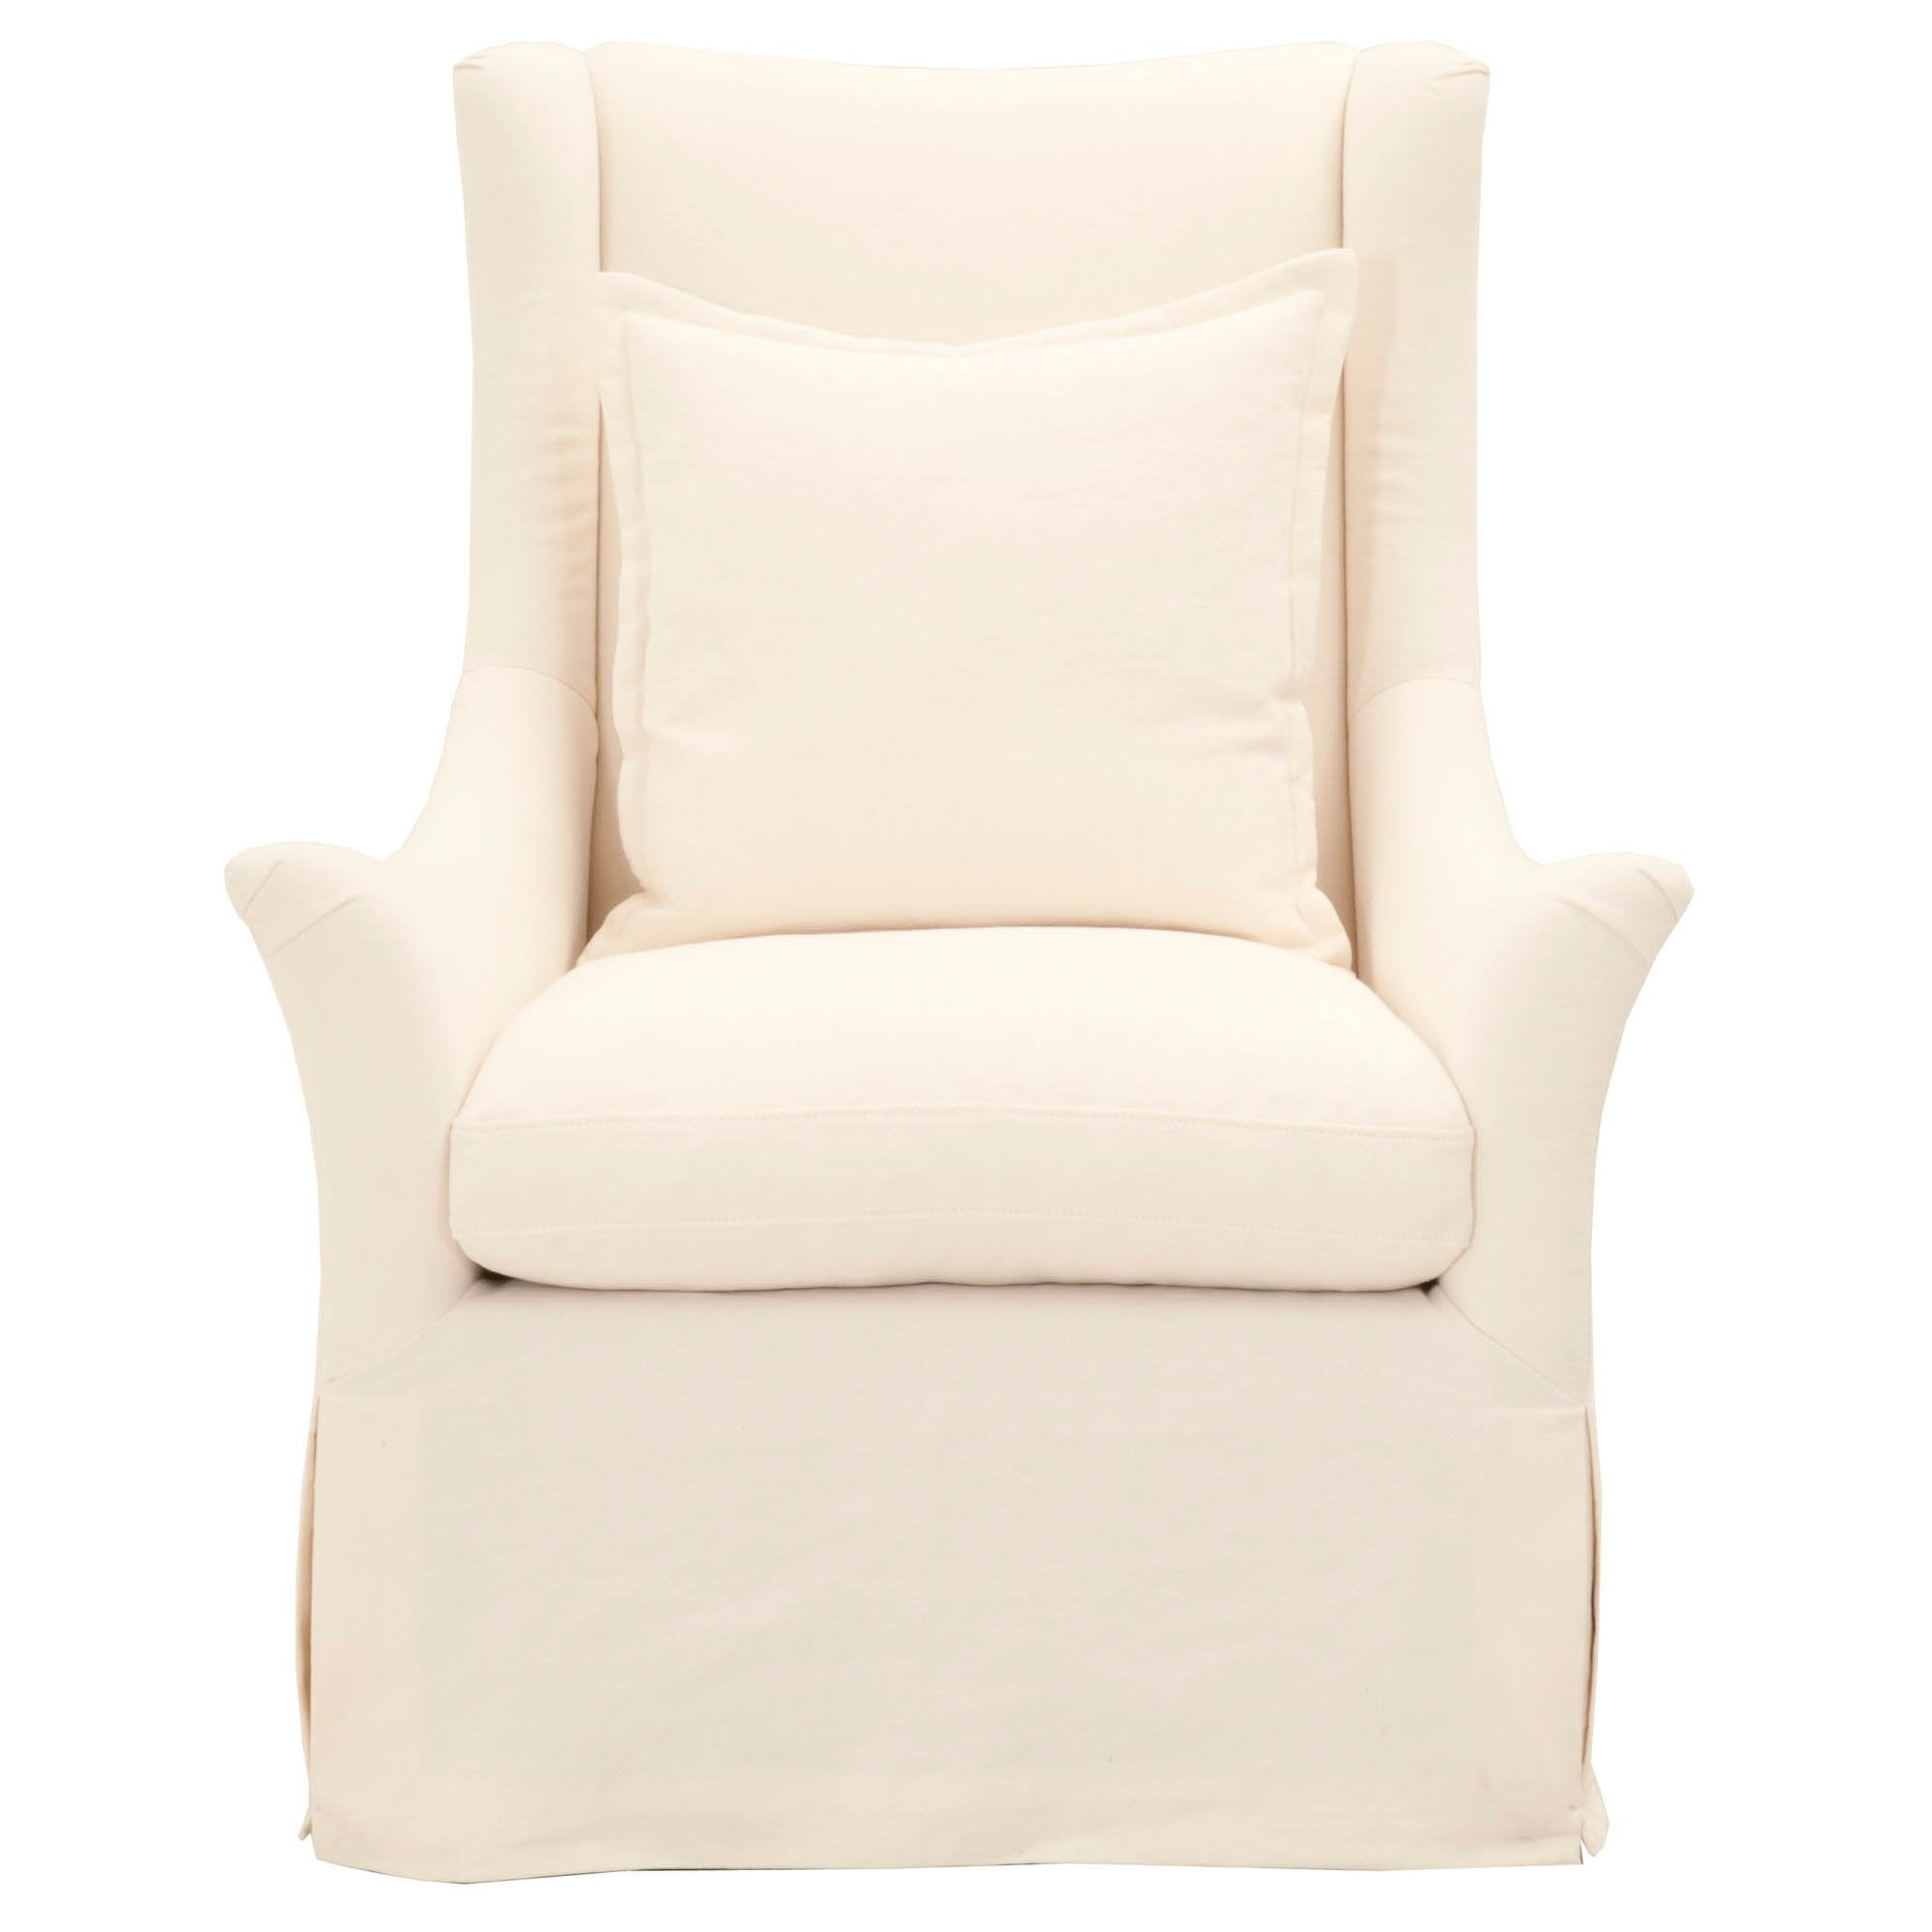 Otto Slipcover Swivel Club Chair in Creme Crepe